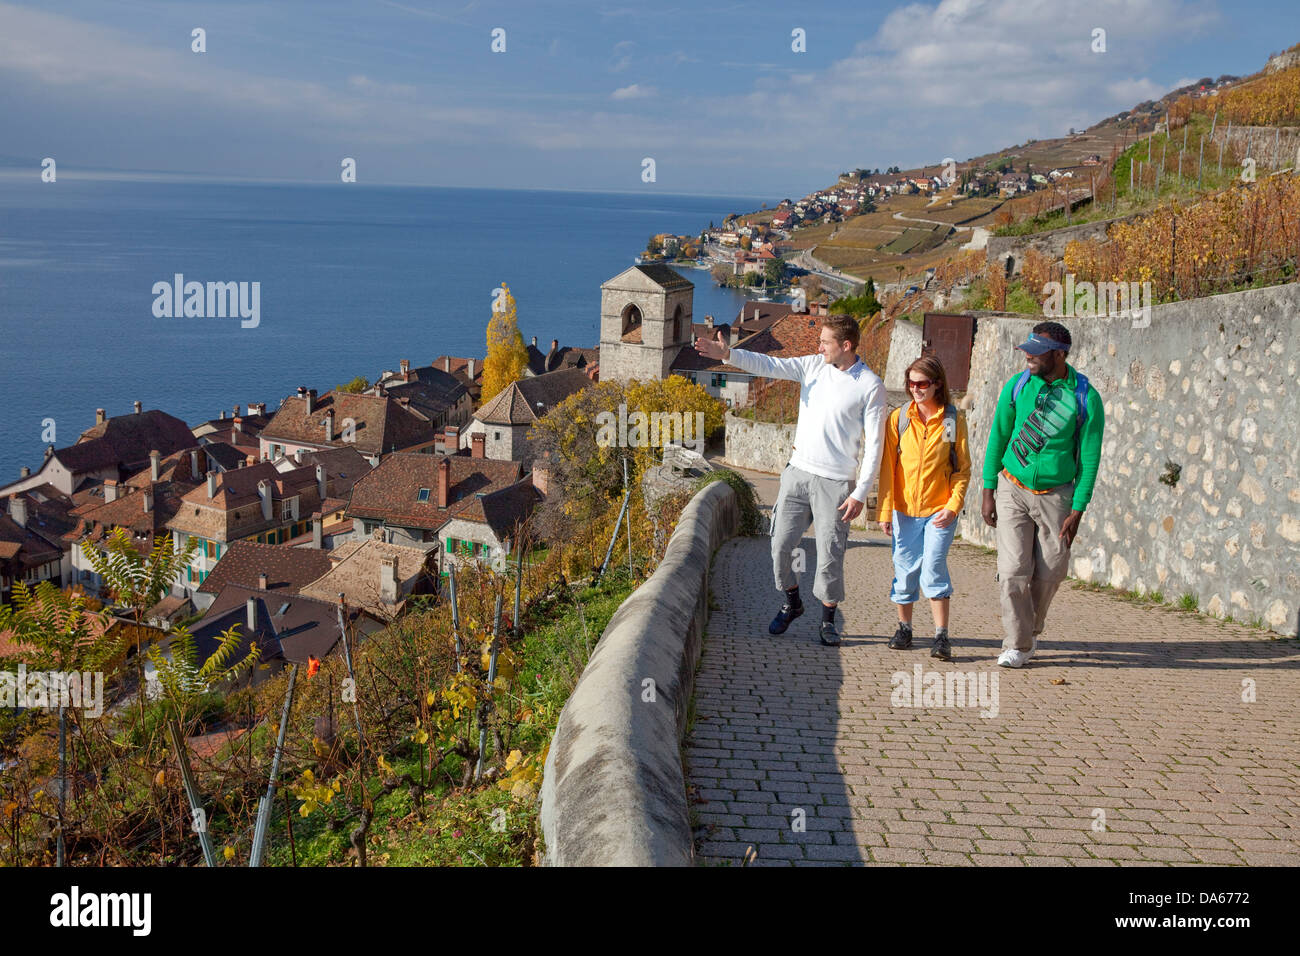 Traveller, Saint Saphorin, Lavaux, autumn, Castle, lake, lakes, canton, VD, Vaud, Lac Leman, wine, shoots, wine, - Stock Image